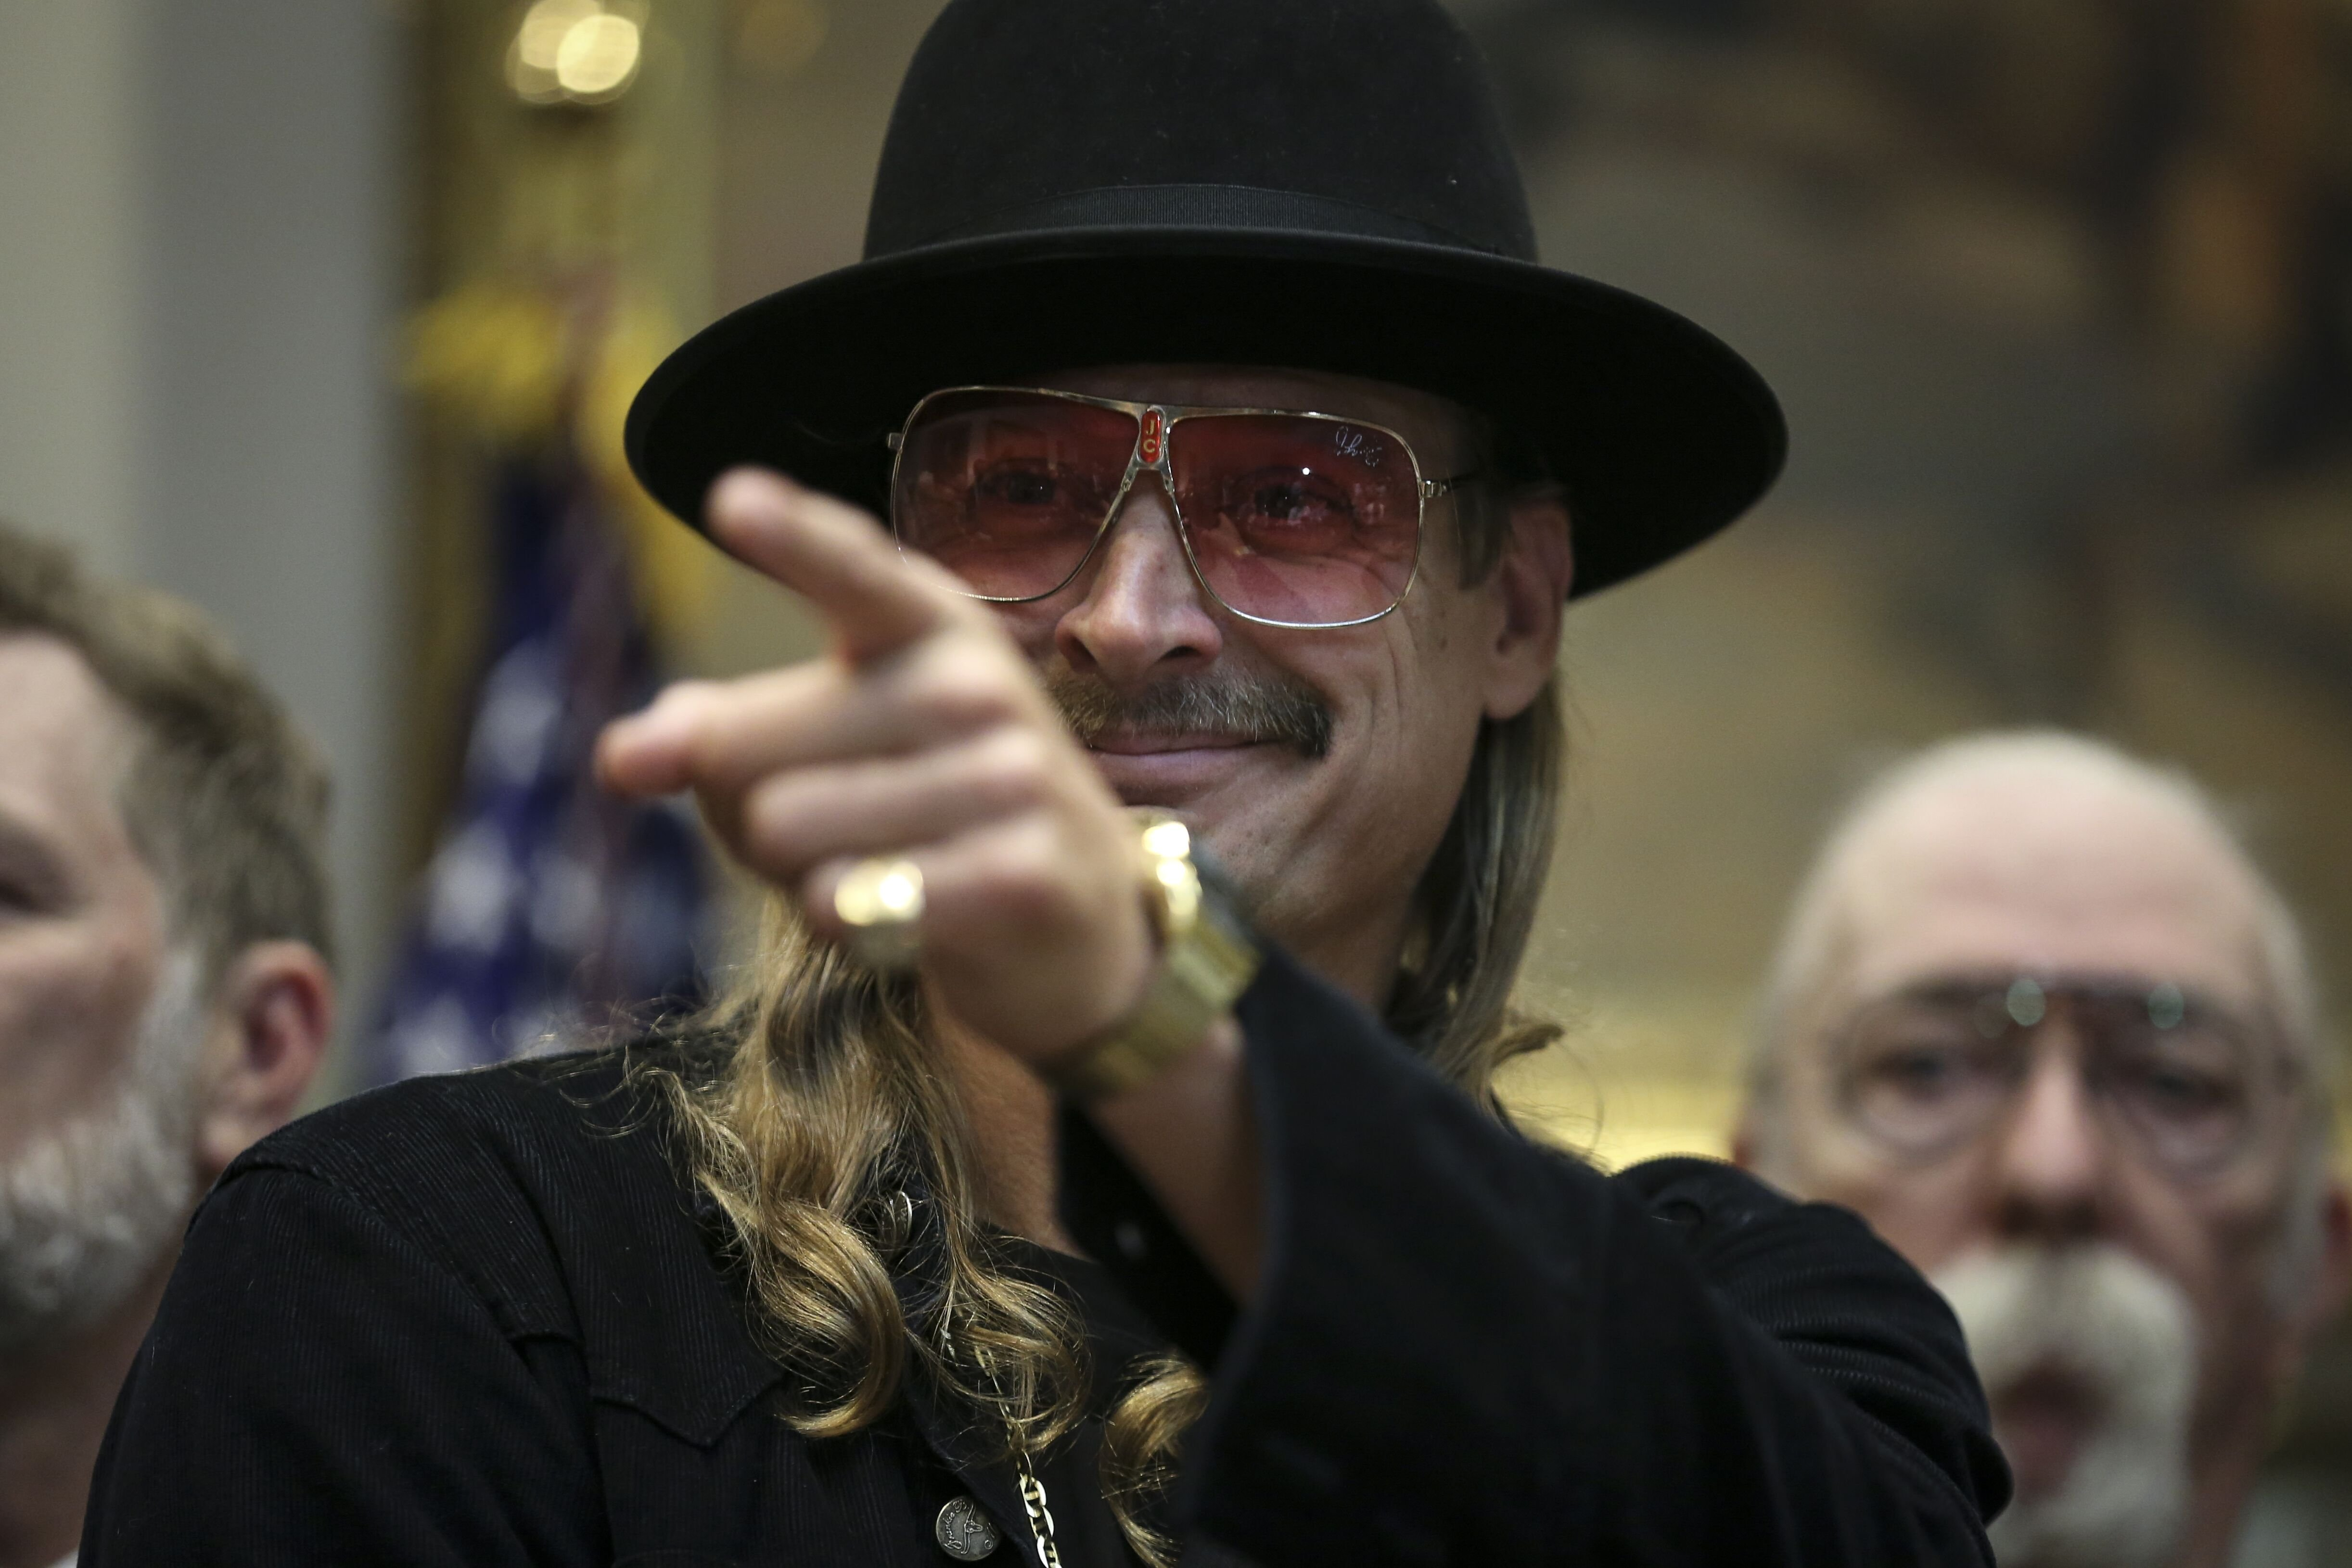 Kid Rock attends a signing ceremony as U.S. President Donald Trump signs the H.R. 1551 in Washington 2018 | Source: Getty Images